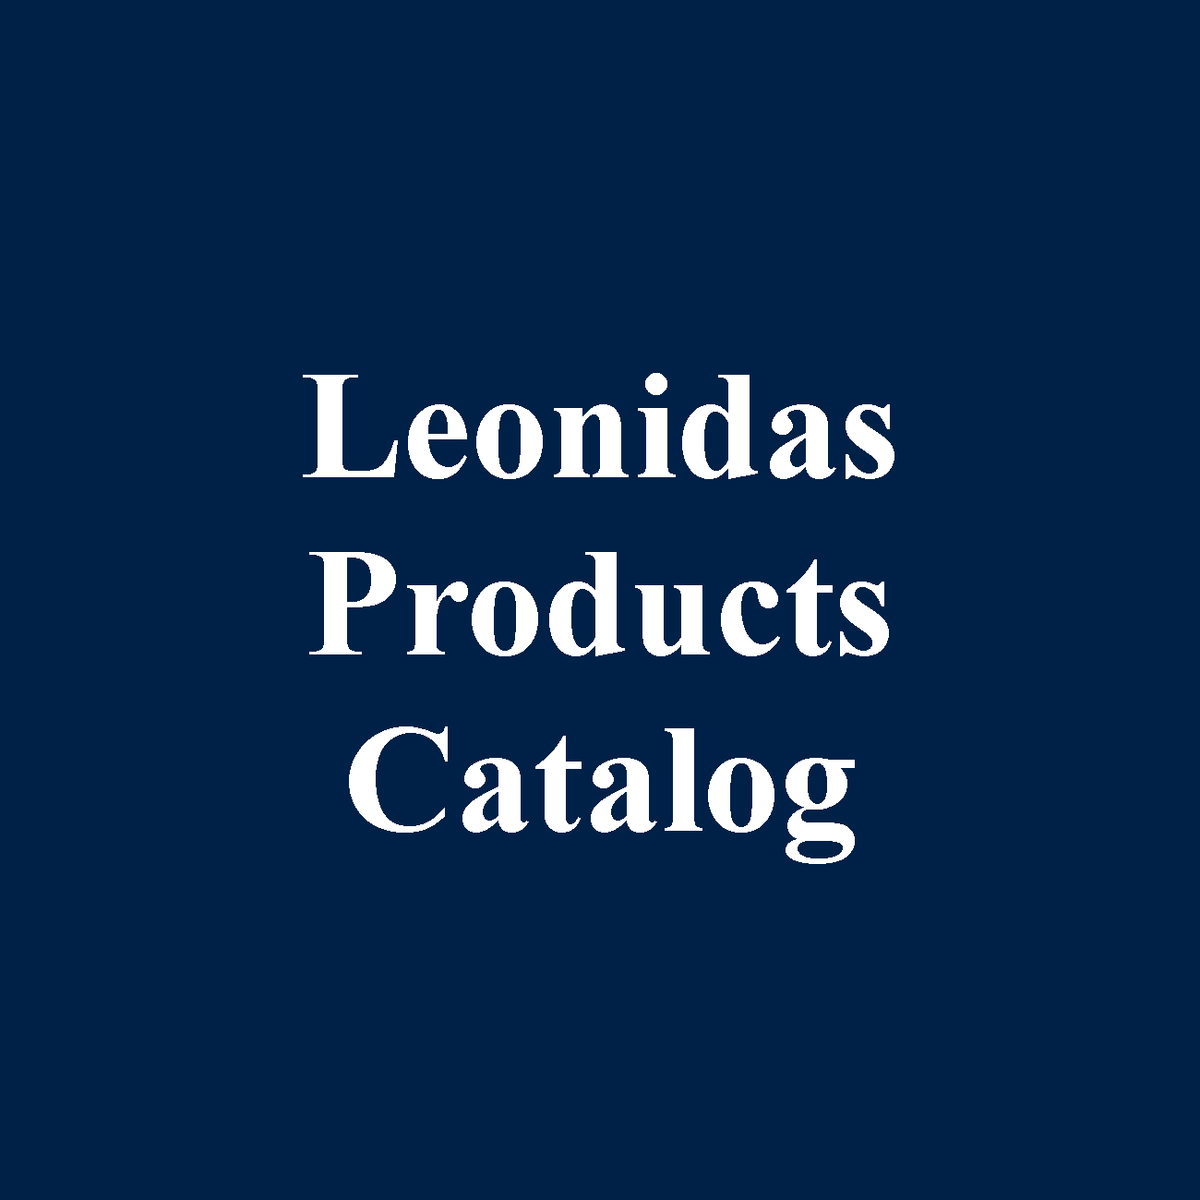 Leonidas Belgian Chocolates Product Catalog